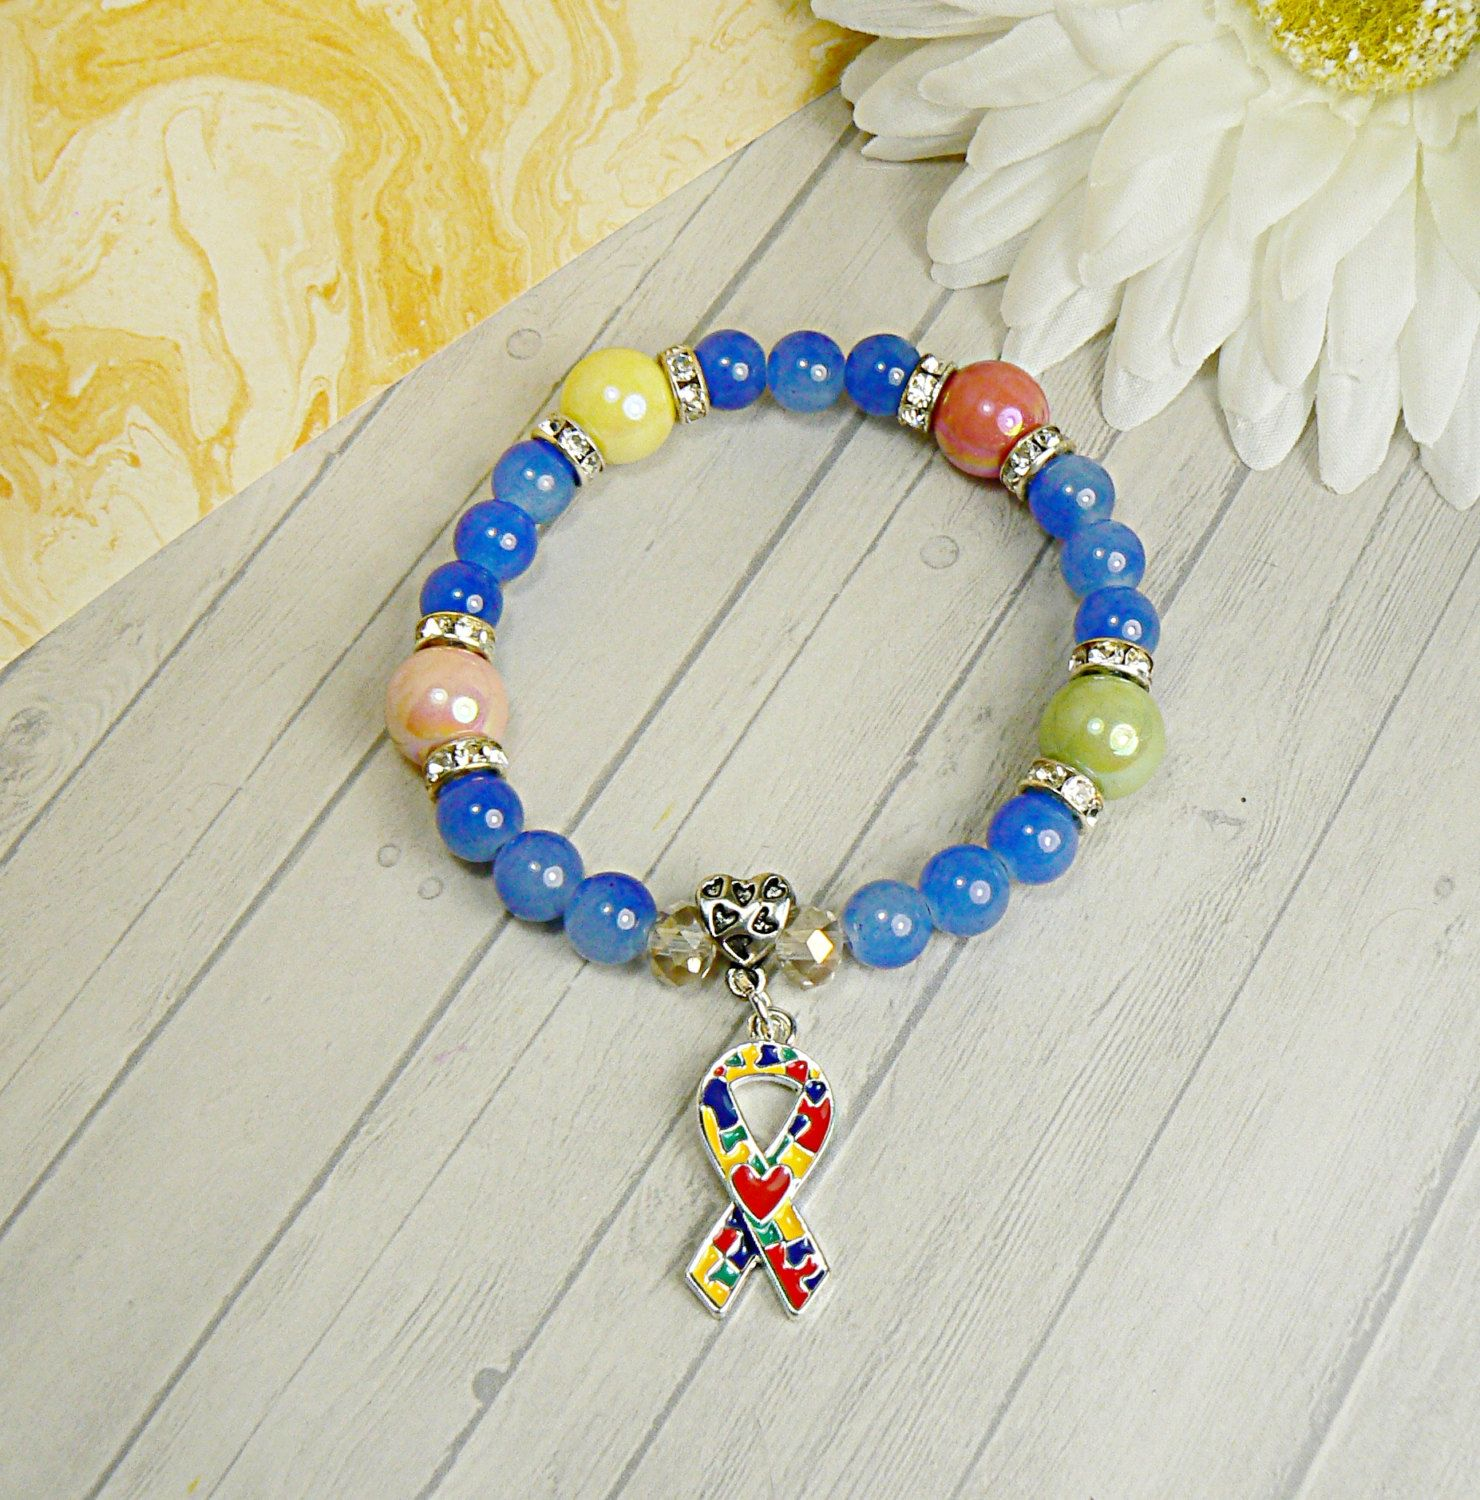 tweens bracelets toddlers toddler kids id and styles saving medical for teens fashion teen to jewelry article from collage autism bracelet fashionable life